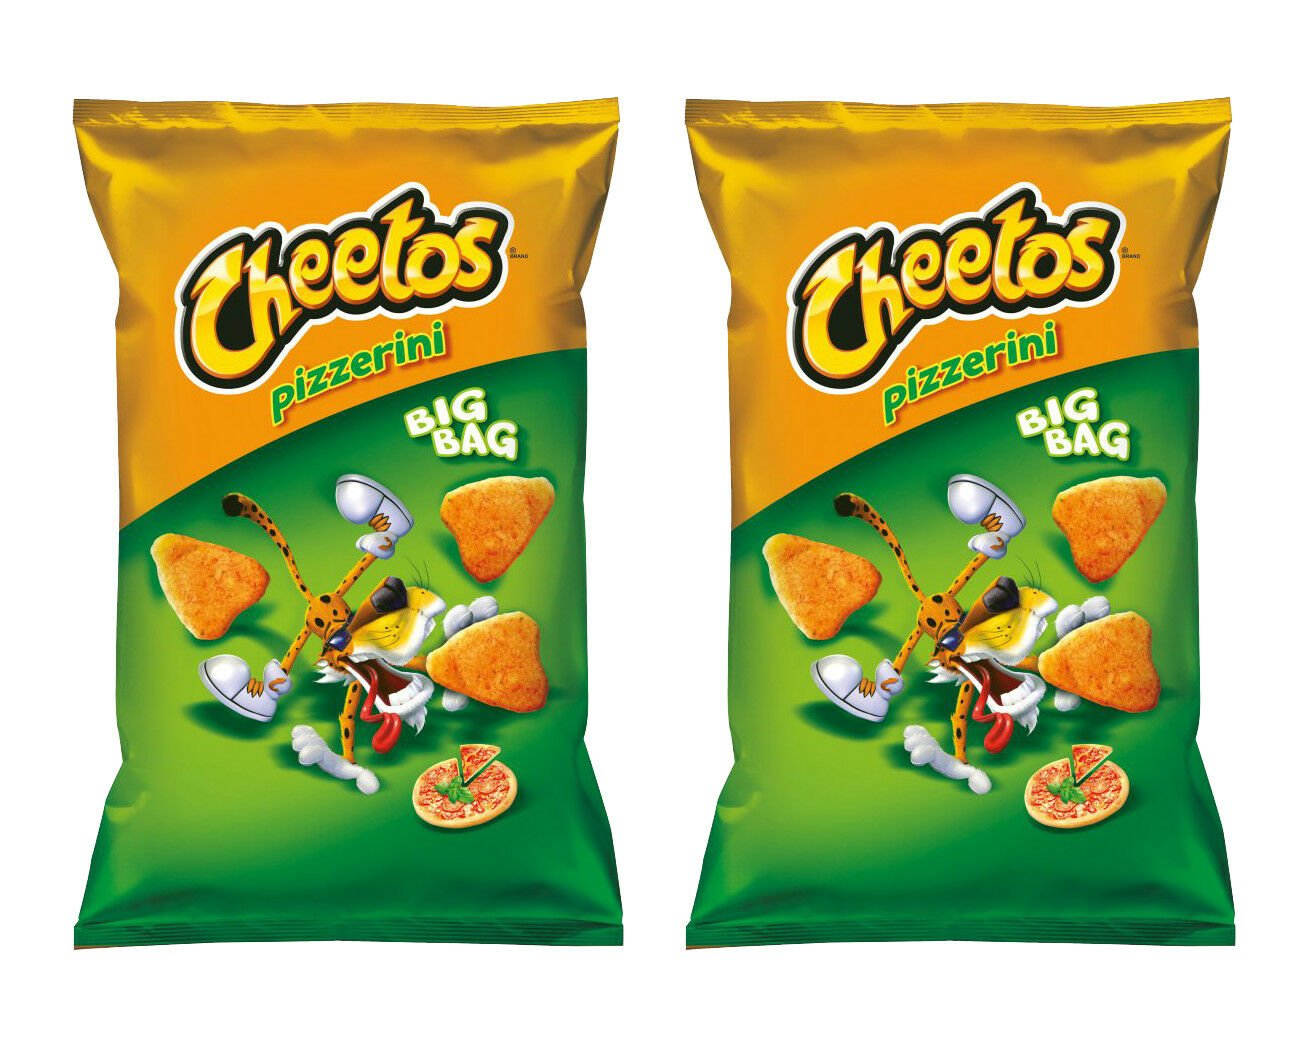 2 x CHEETOS PIZZERINI Pizza Flavor Chips 85g   Made in Poland From Europe